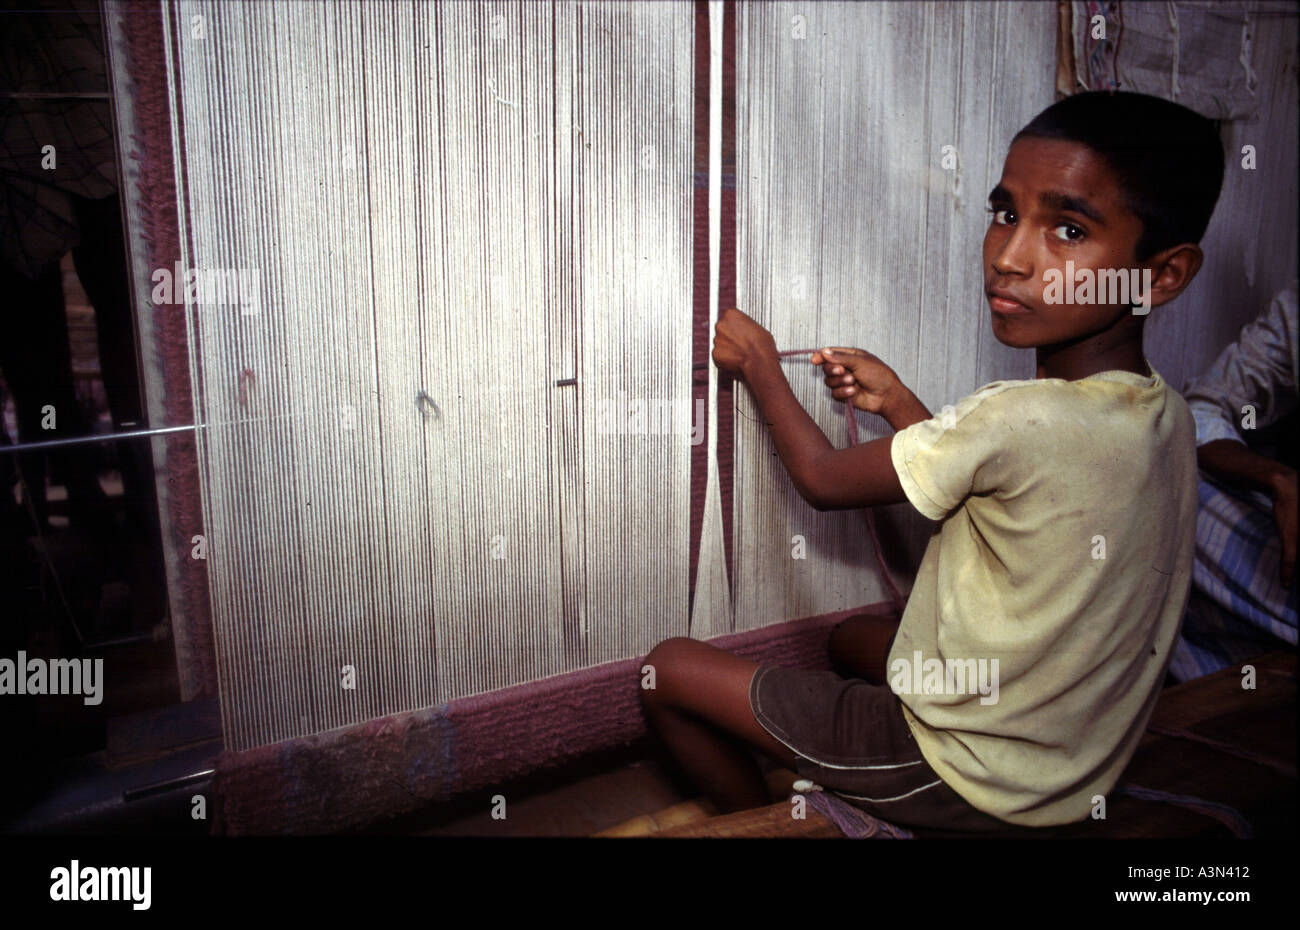 A child works in the carpet factories of Uttar Pradesh India The children are bonded labour trafficked from Bihar and Nepal Their small fingers are adept at manipulating the threads The carpets sell for thousands of dollars in New York and Paris The children who manufacture them are essentially slaves - Stock Image